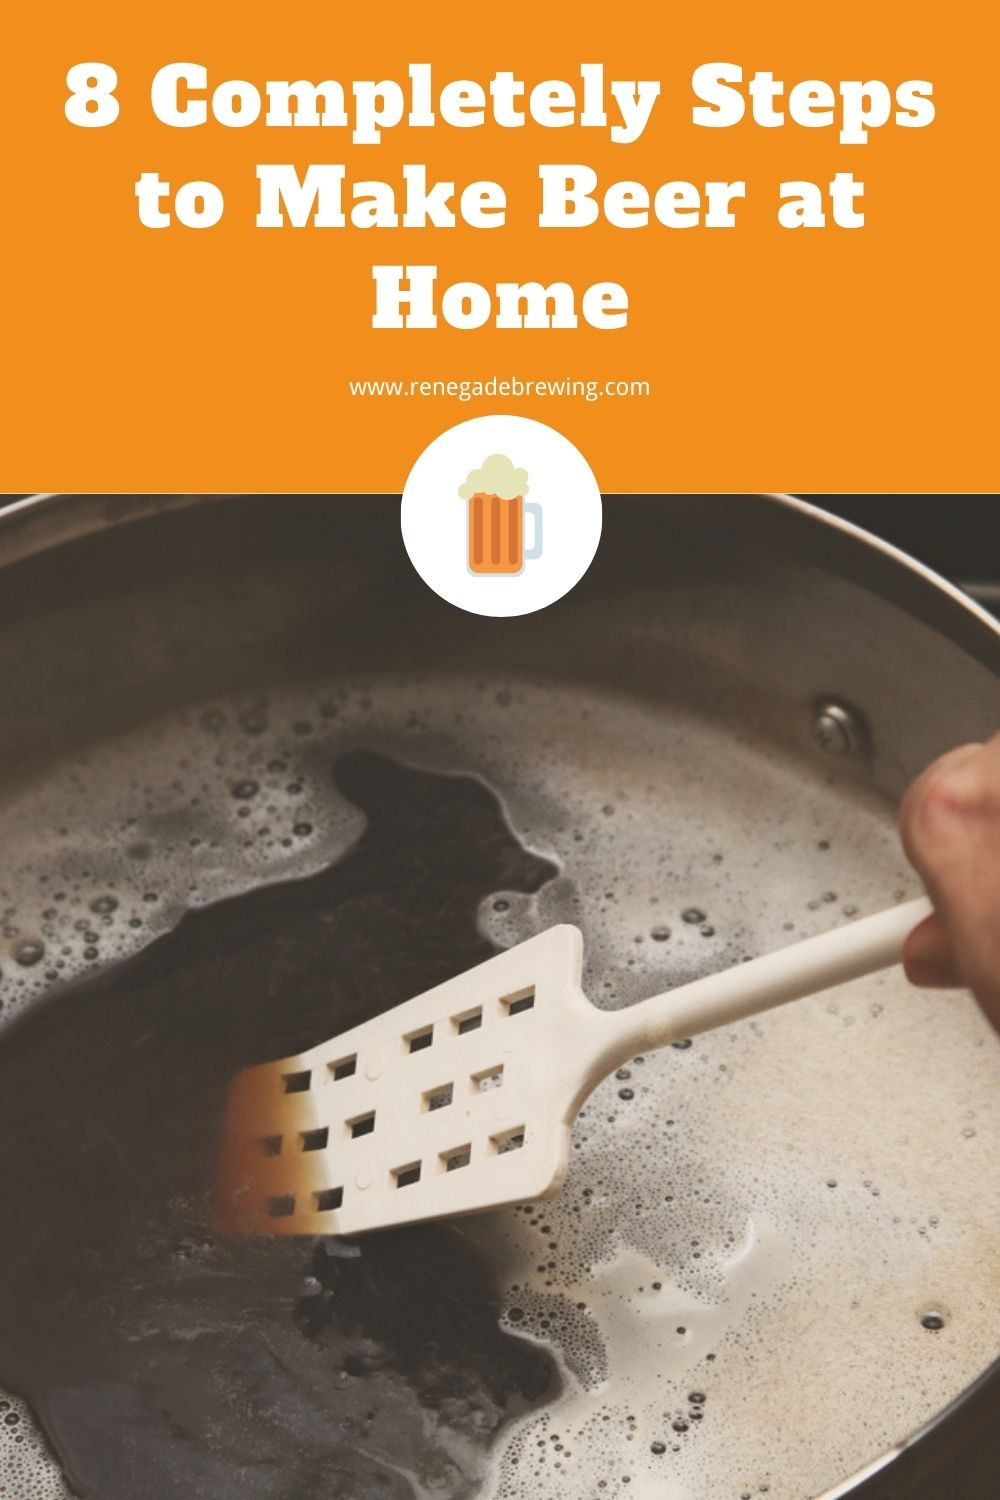 8 Completely Steps to Make Beer at Home 1